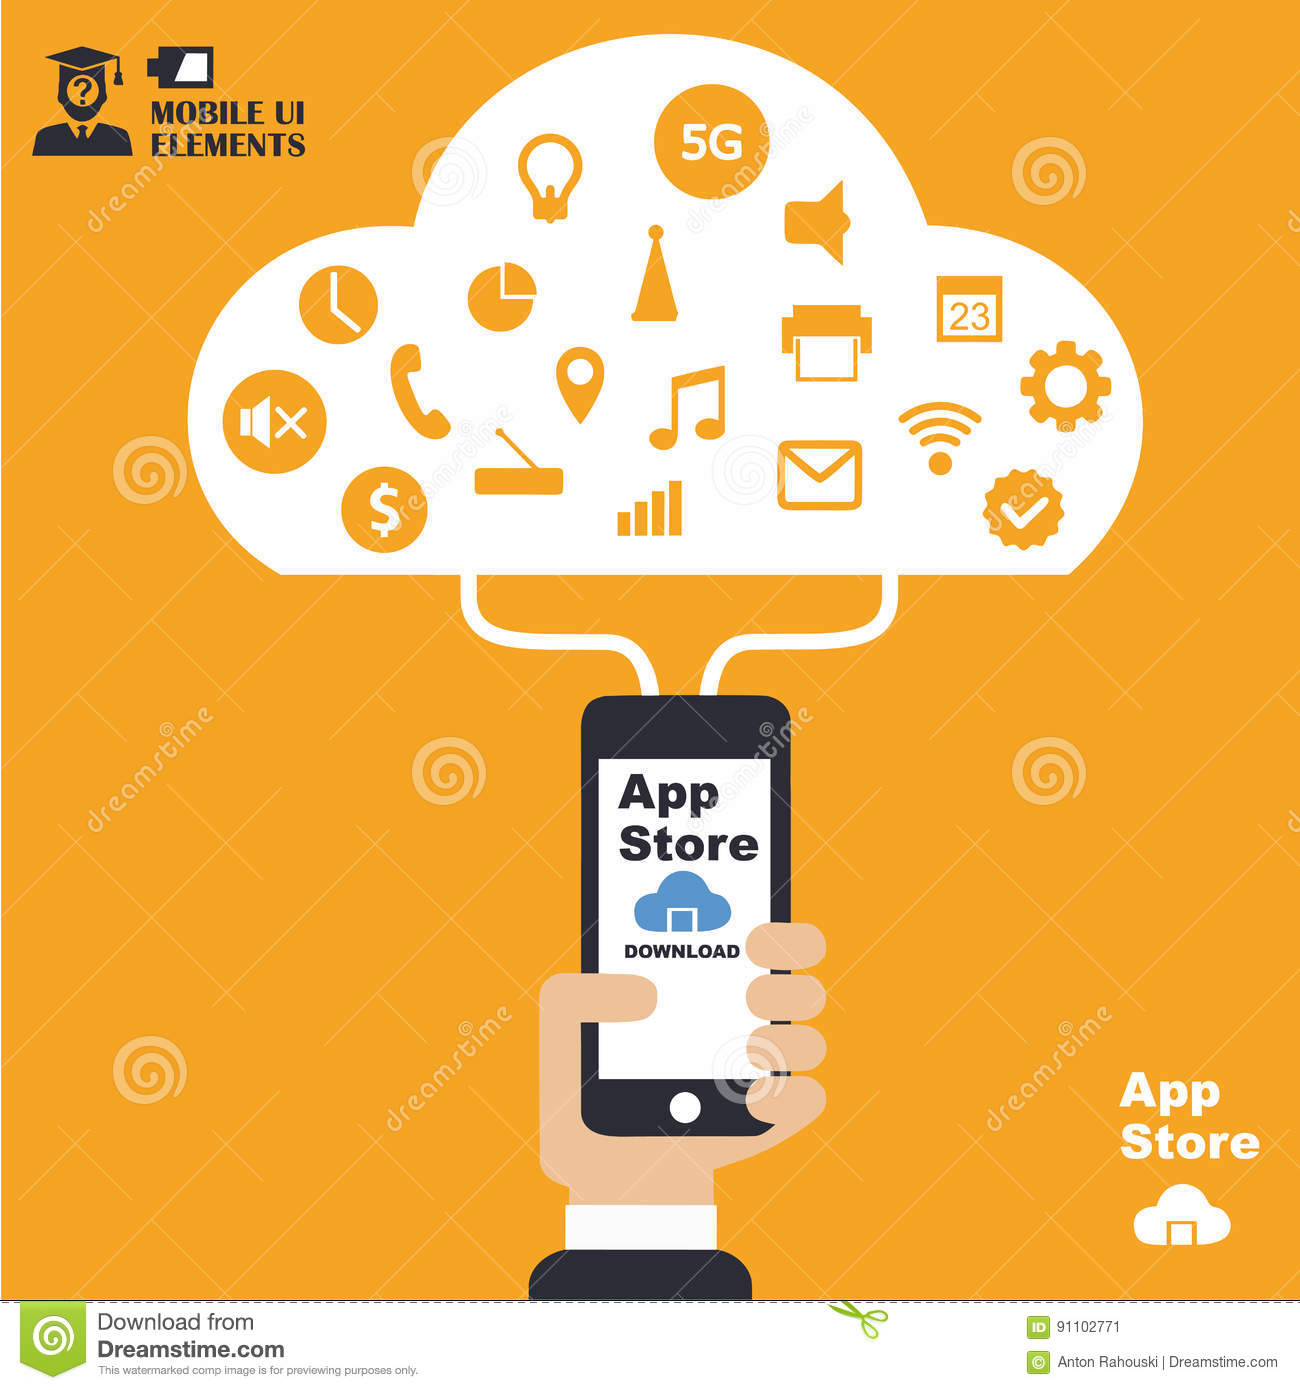 Mobile App Store, Concept, Flat Design Illustration,human